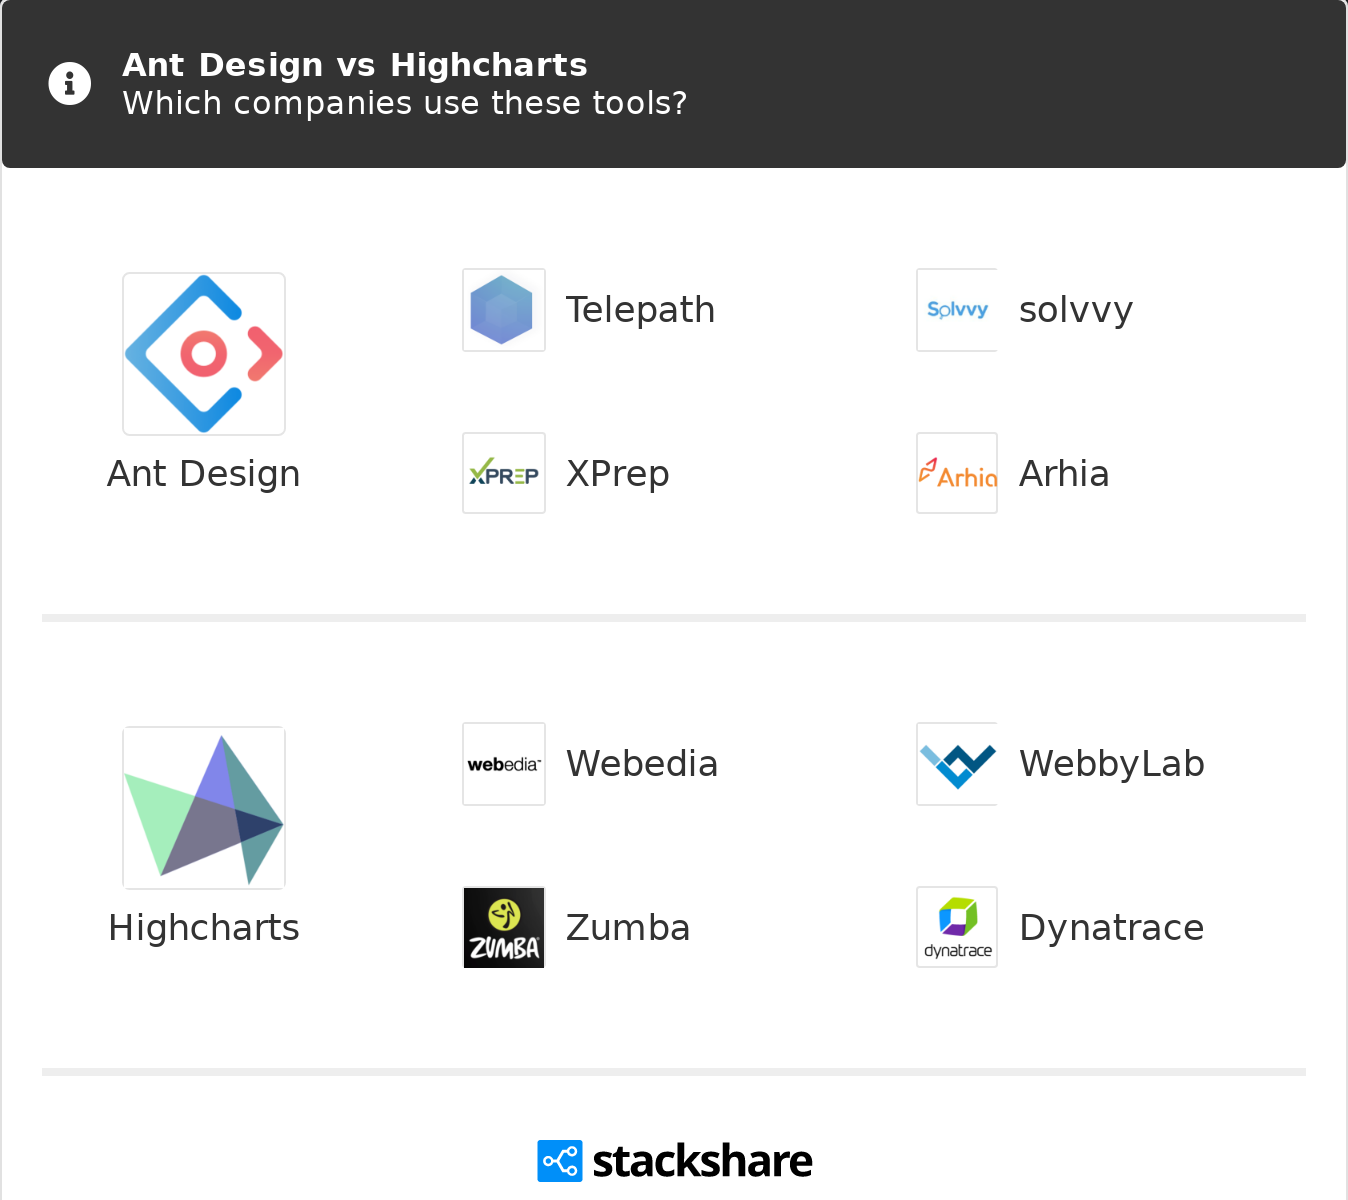 Ant Design vs Highcharts | What are the differences?